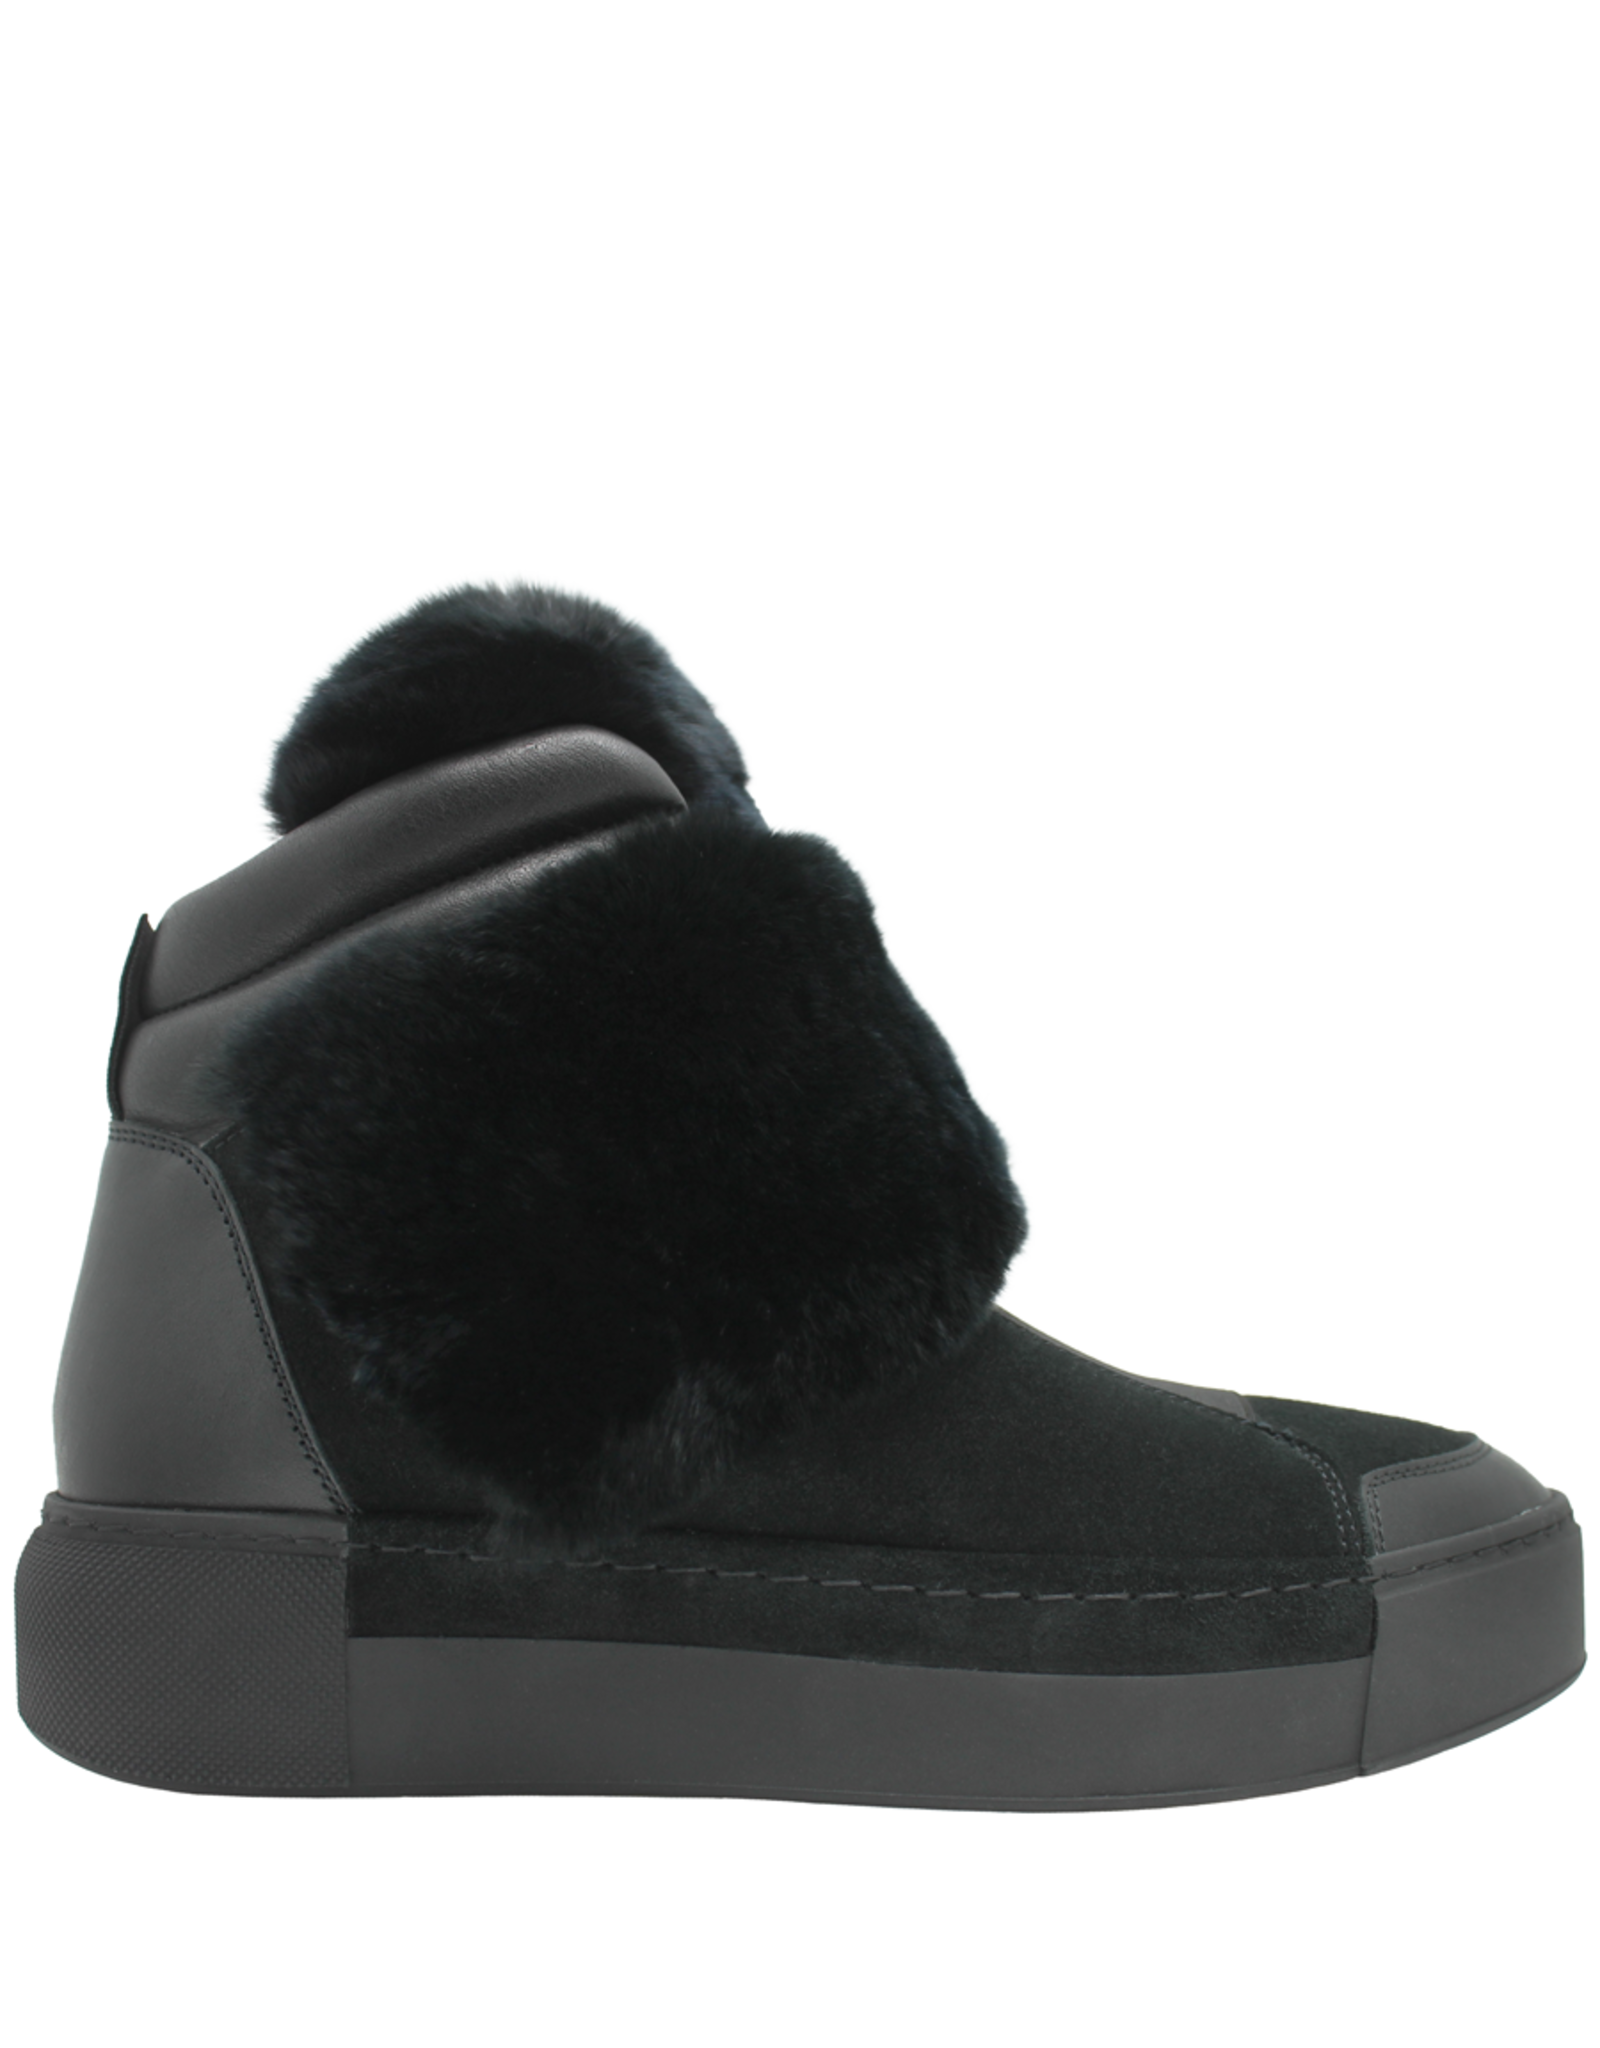 VicMatie VicMatie Black Suede With Fur and Shearling Lined Sneaker 7772